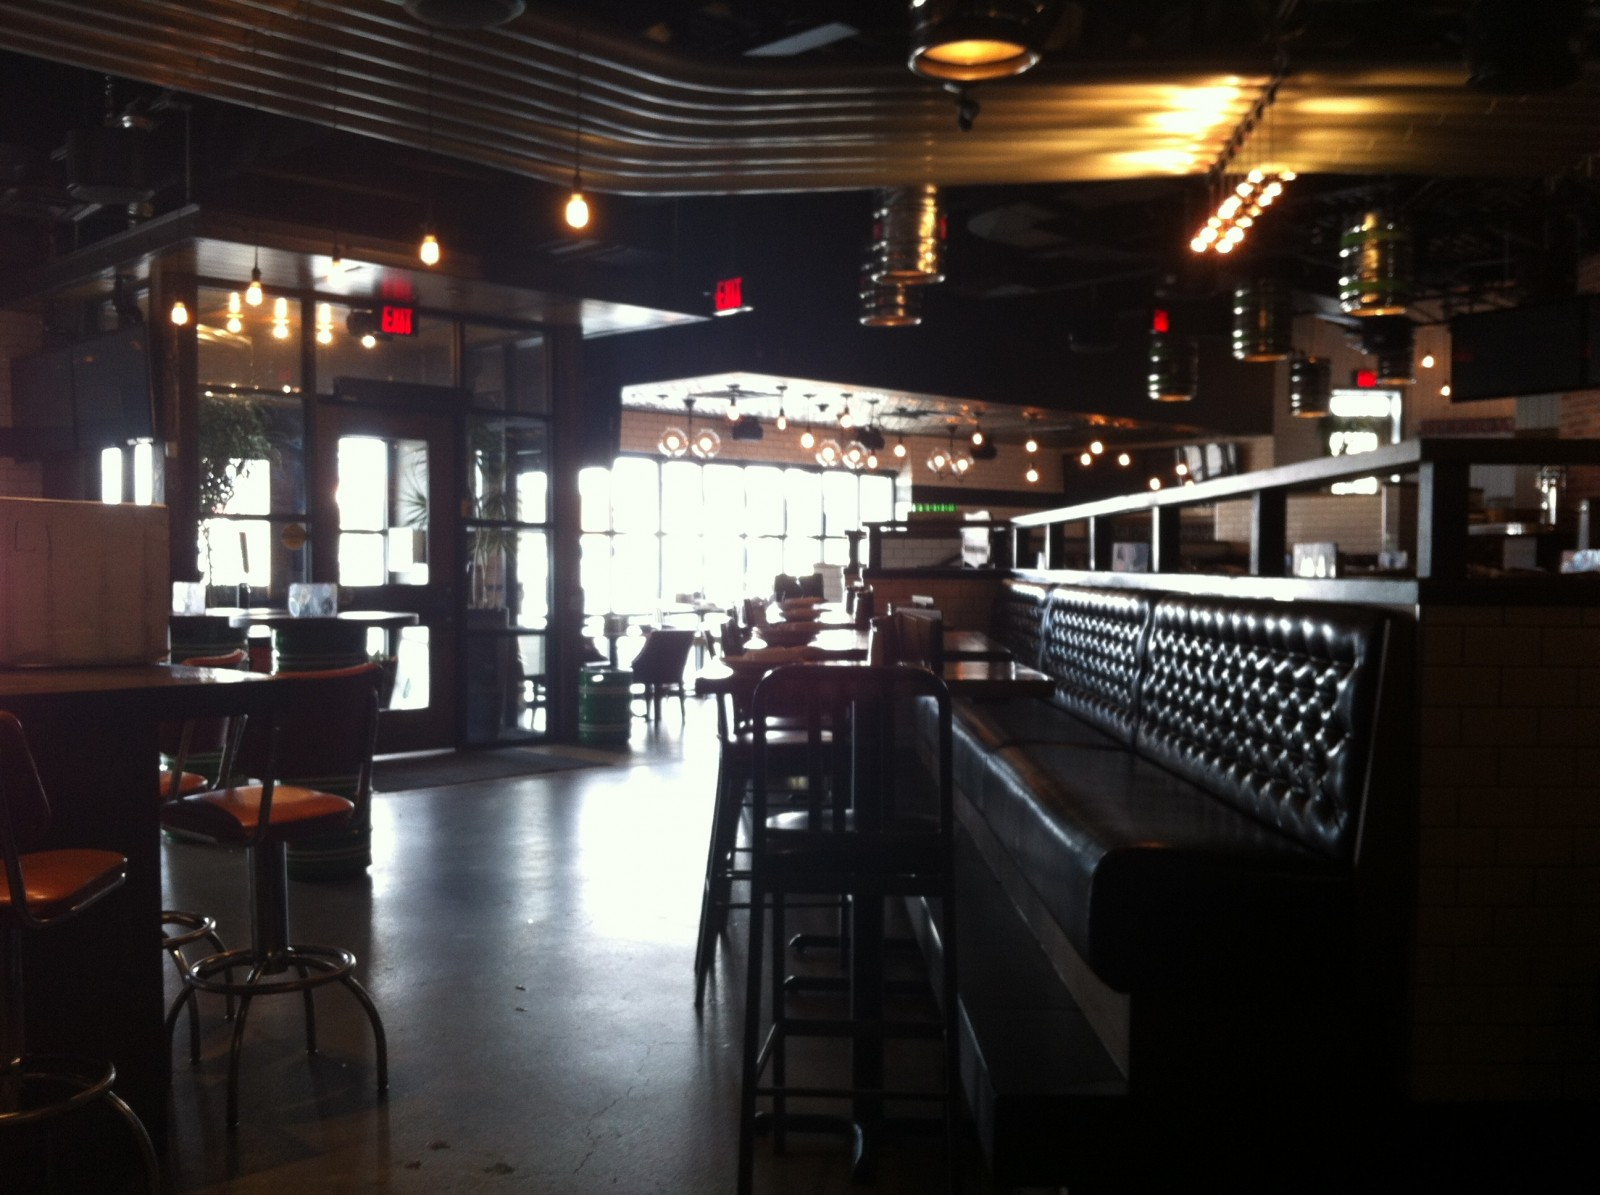 Beer infused with hot sauce? Beertown to serve dinner with Brooklyn Brewery